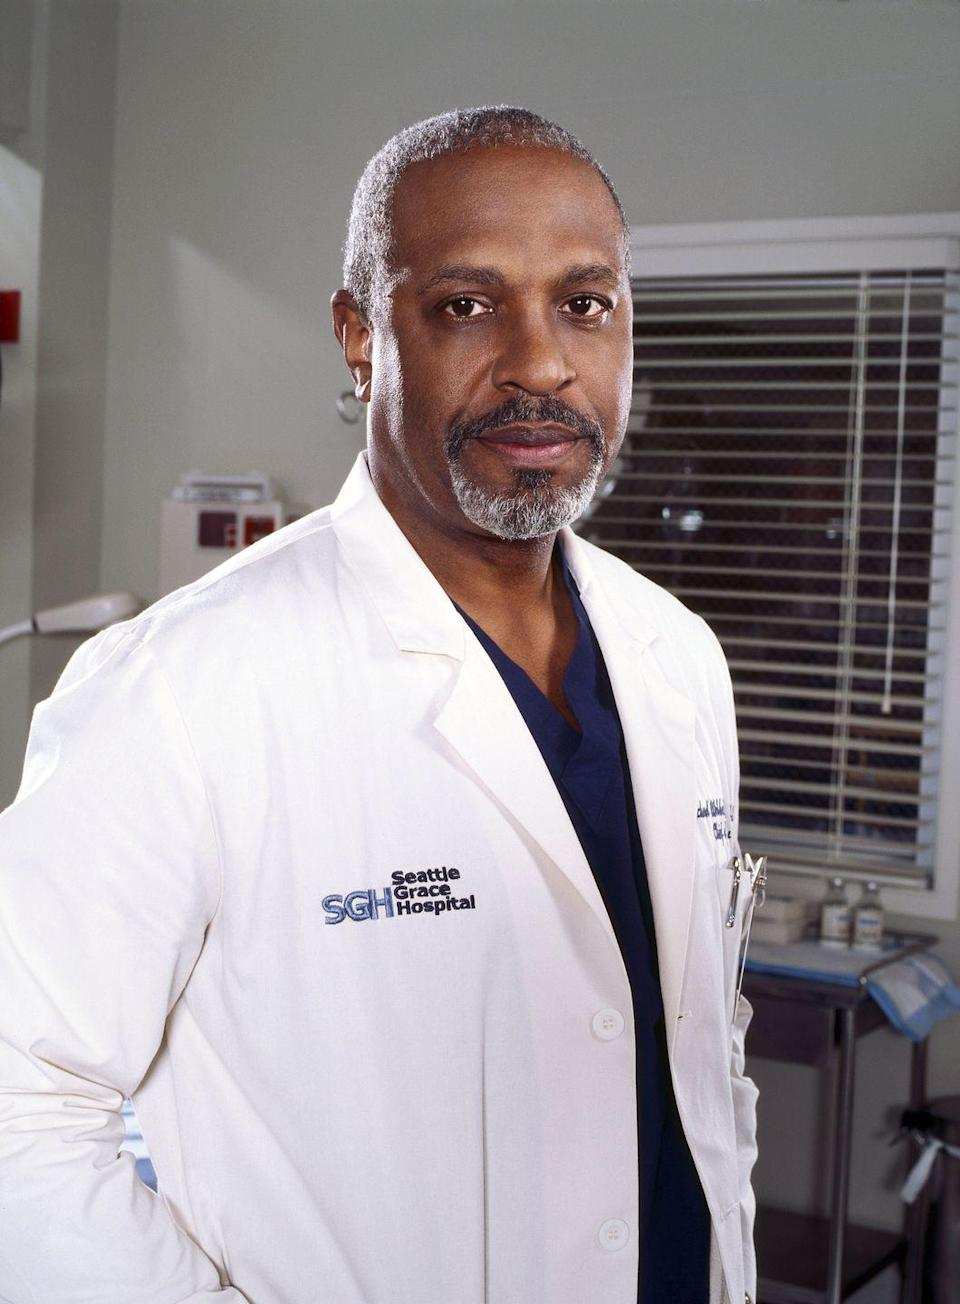 <p>Speaking of Seattle Grace/Grey Sloan Memorial chiefs, OG Chief Richard Webber, played by James Pickens, Jr., has been around since season 1.</p>